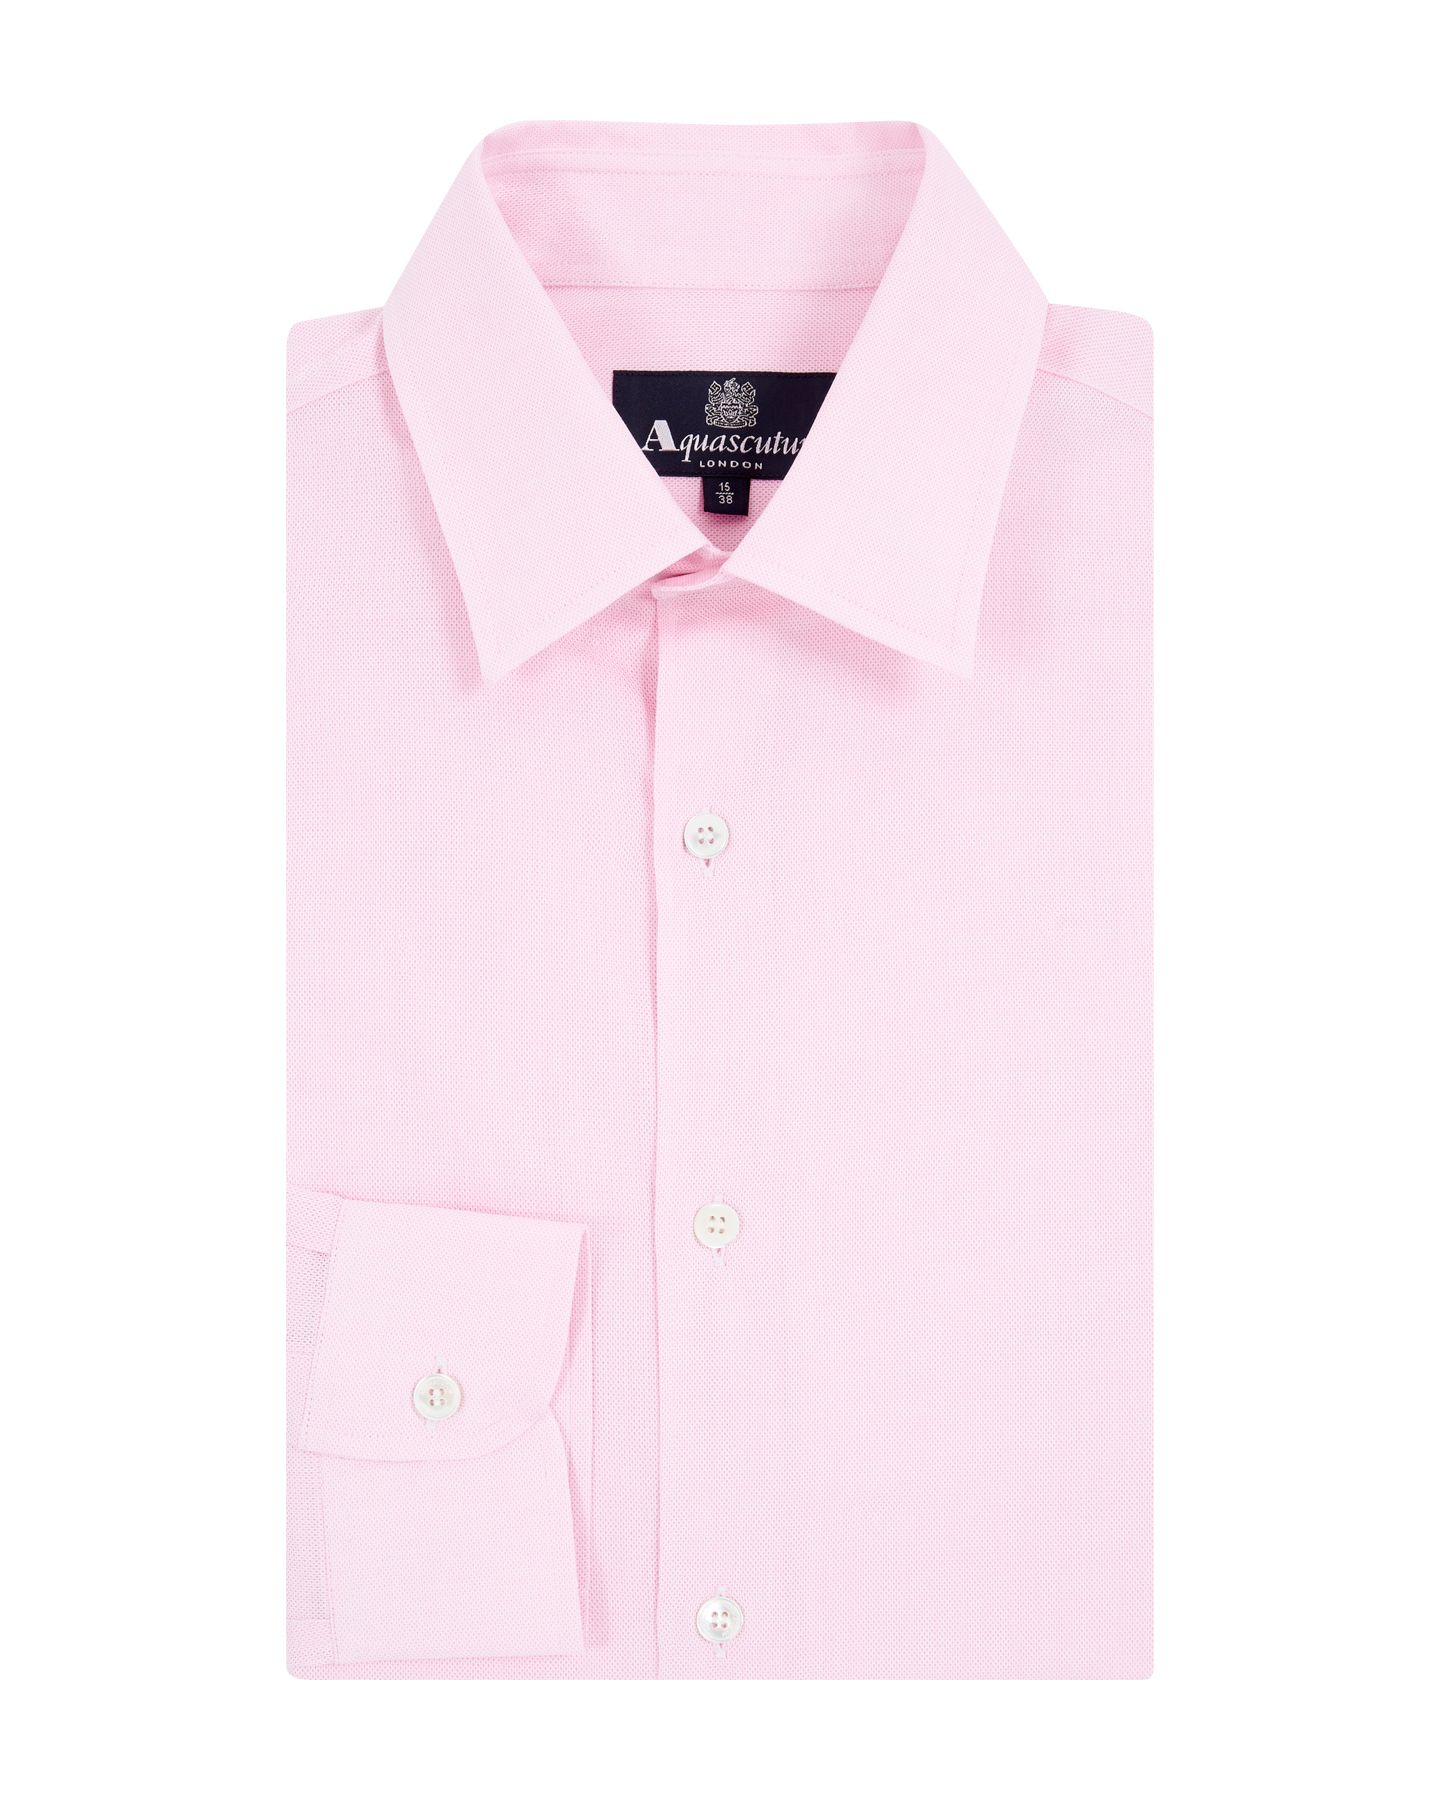 Capell tailored long sleeve shirt